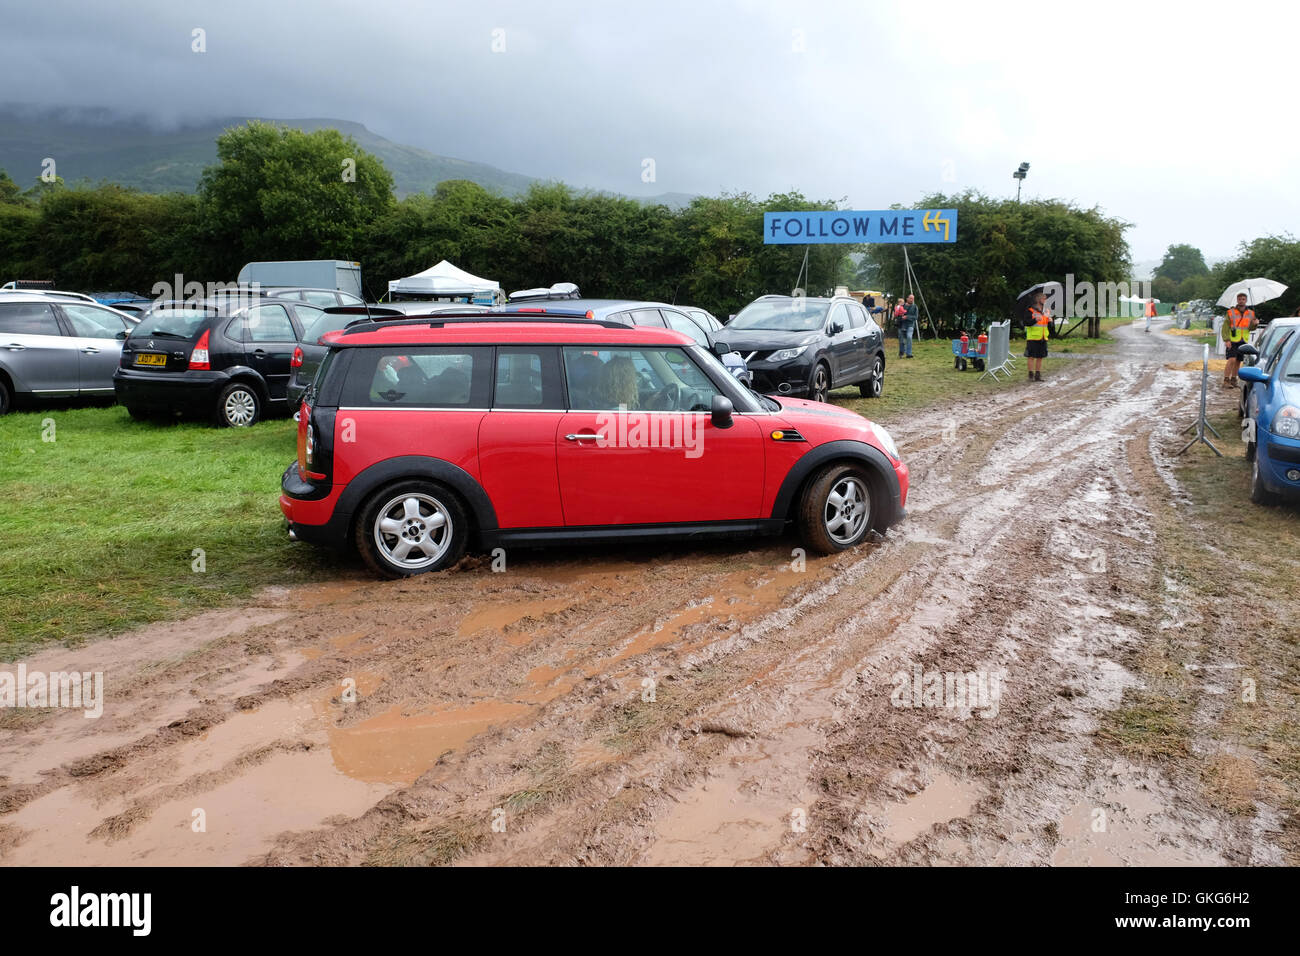 Green Man Festival, Crickhowell, Wales  - Saturday 20th August 2016 - UK Weather - Heavy overnight rain has turned - Stock Image